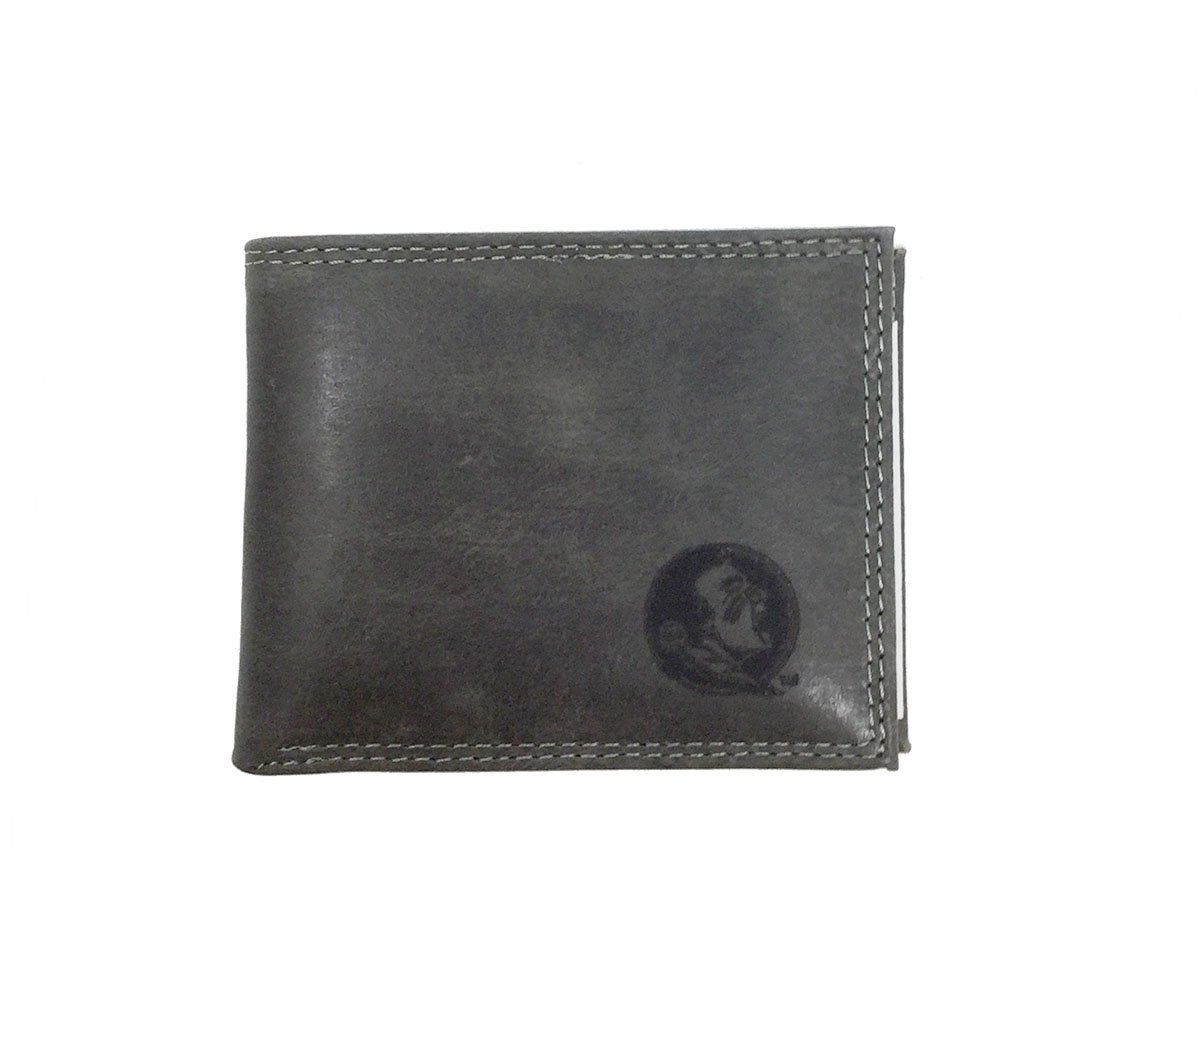 Zeppelin Products NCAA Florida State University Seminoles Grey Embossed Passcase Wallet by Zeppelin (Image #1)